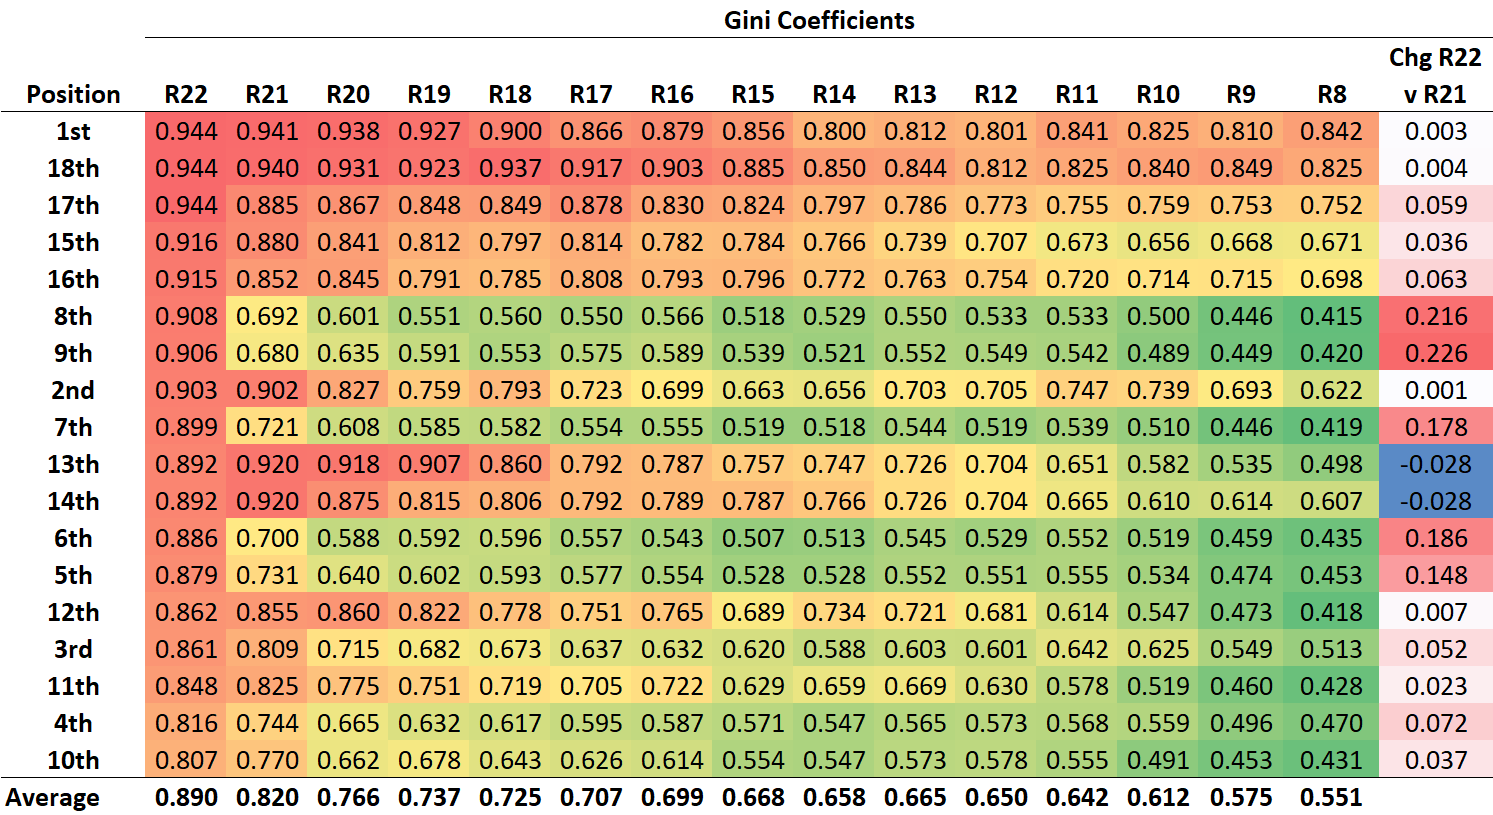 R23 - Gini - Position.png